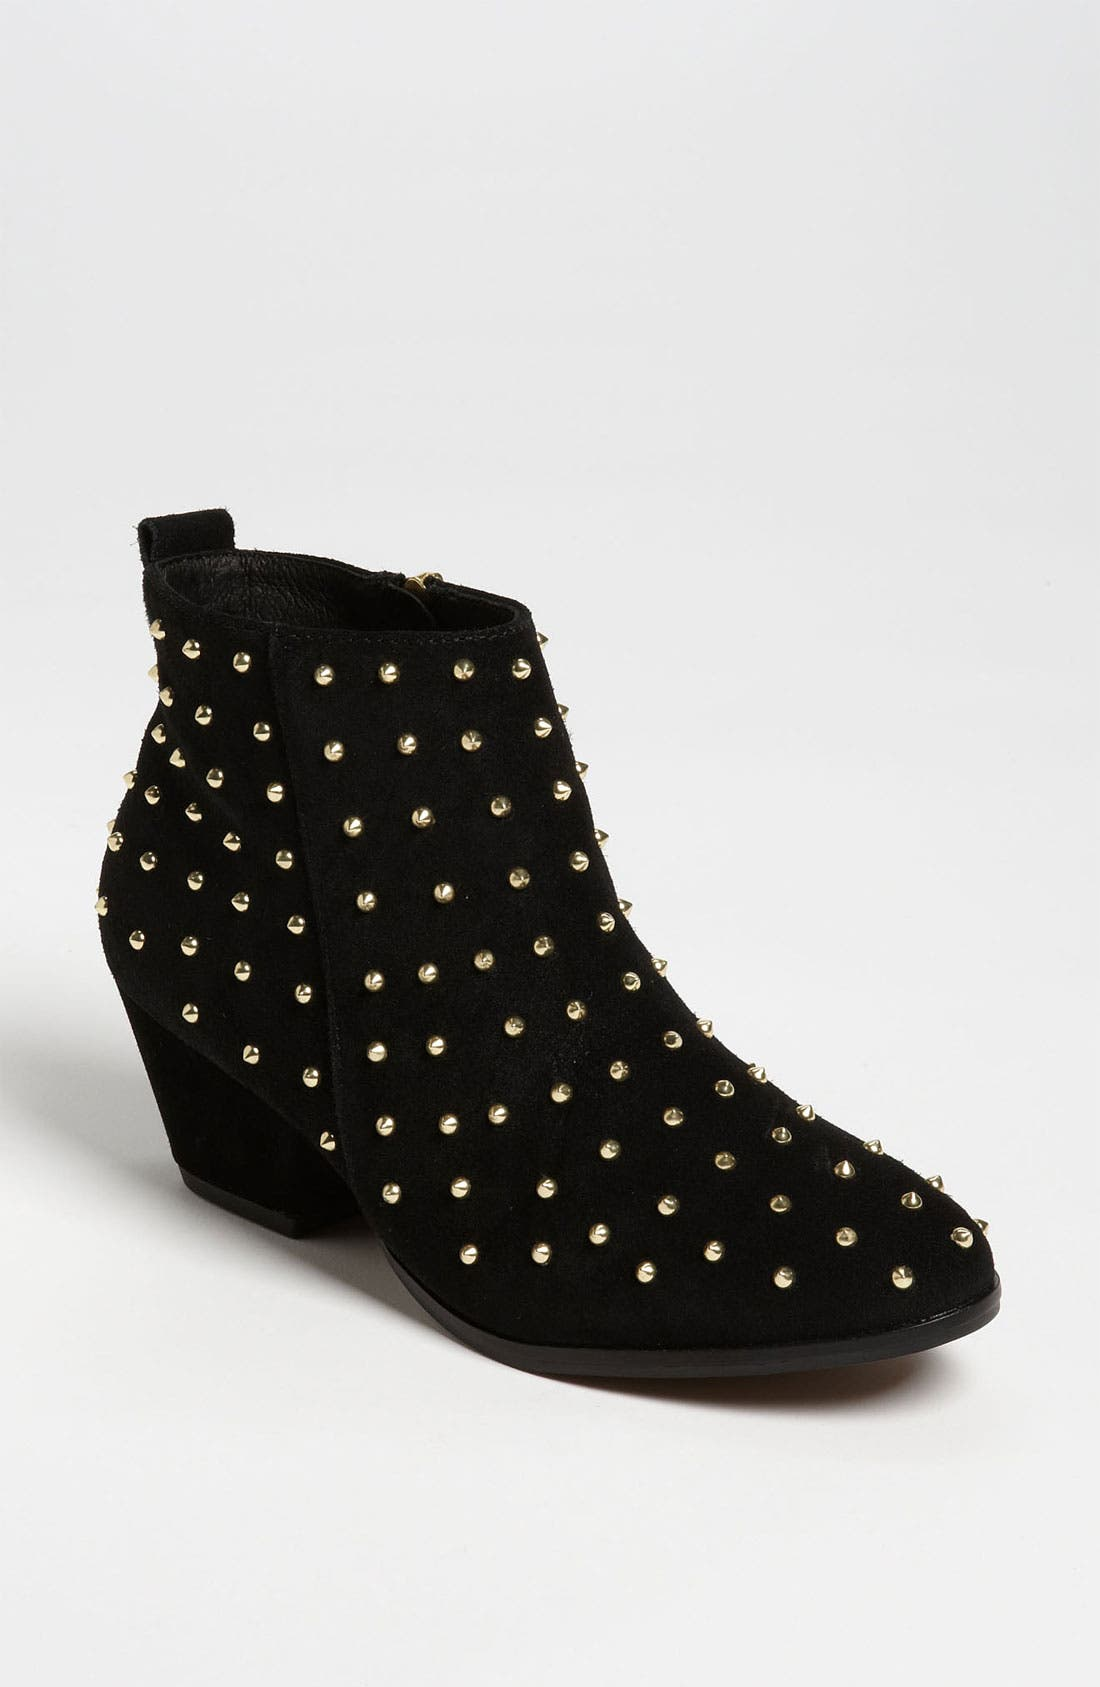 Alternate Image 1 Selected - Topshop 'Adios' Ankle Boot